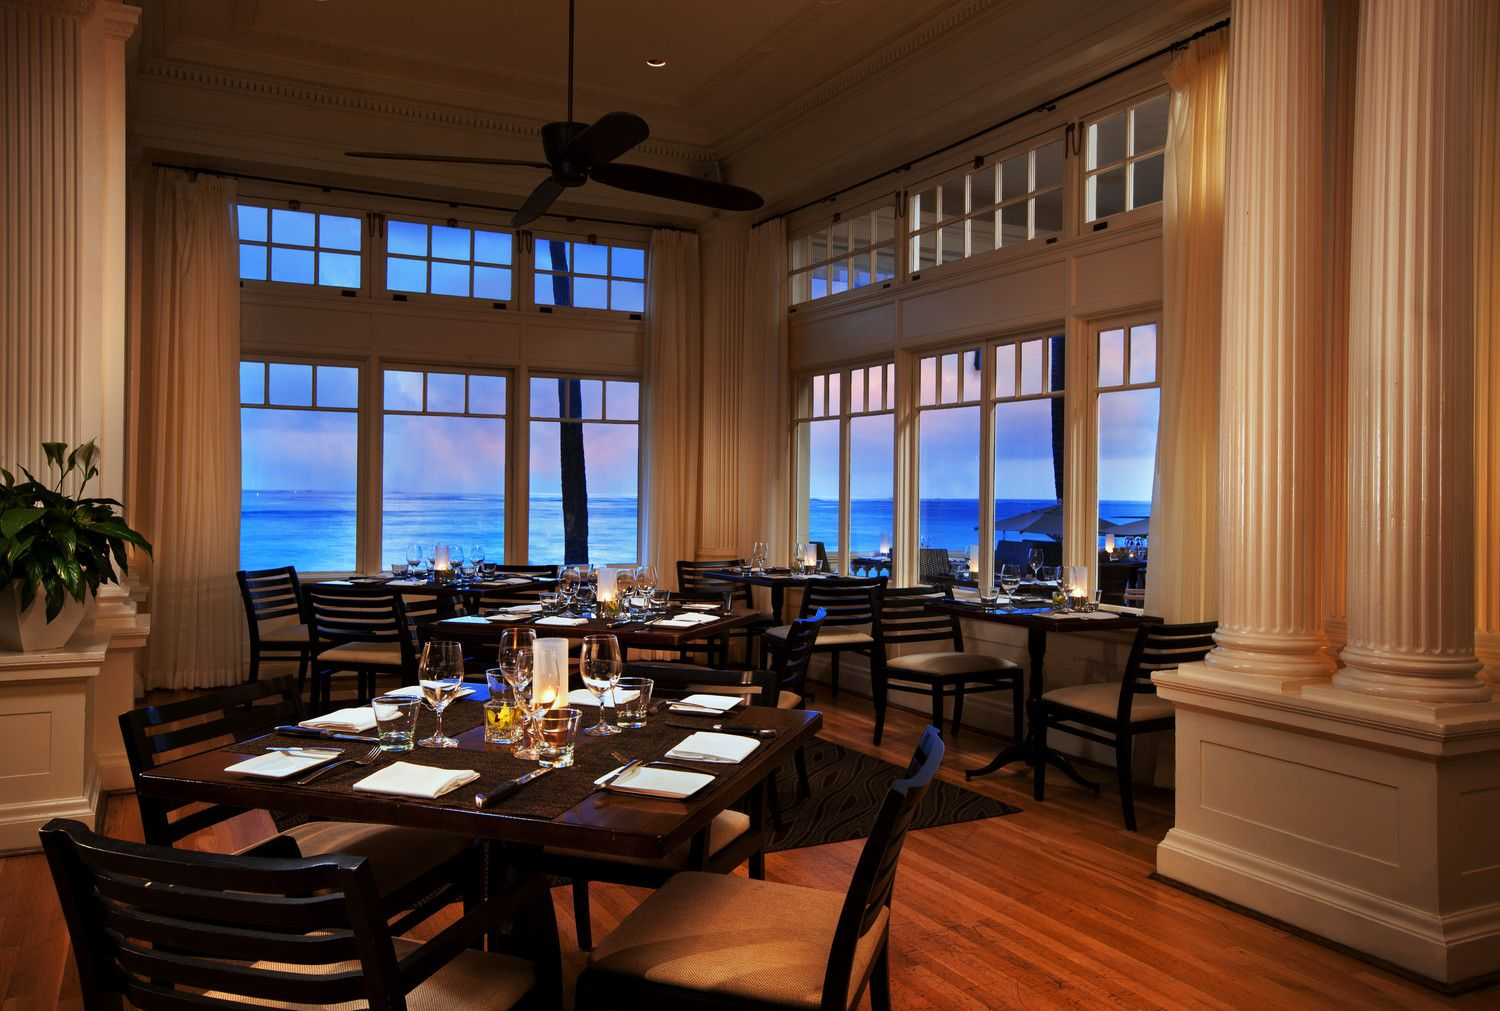 Moana Surfrider, A Westin Resort & Spa - Dining